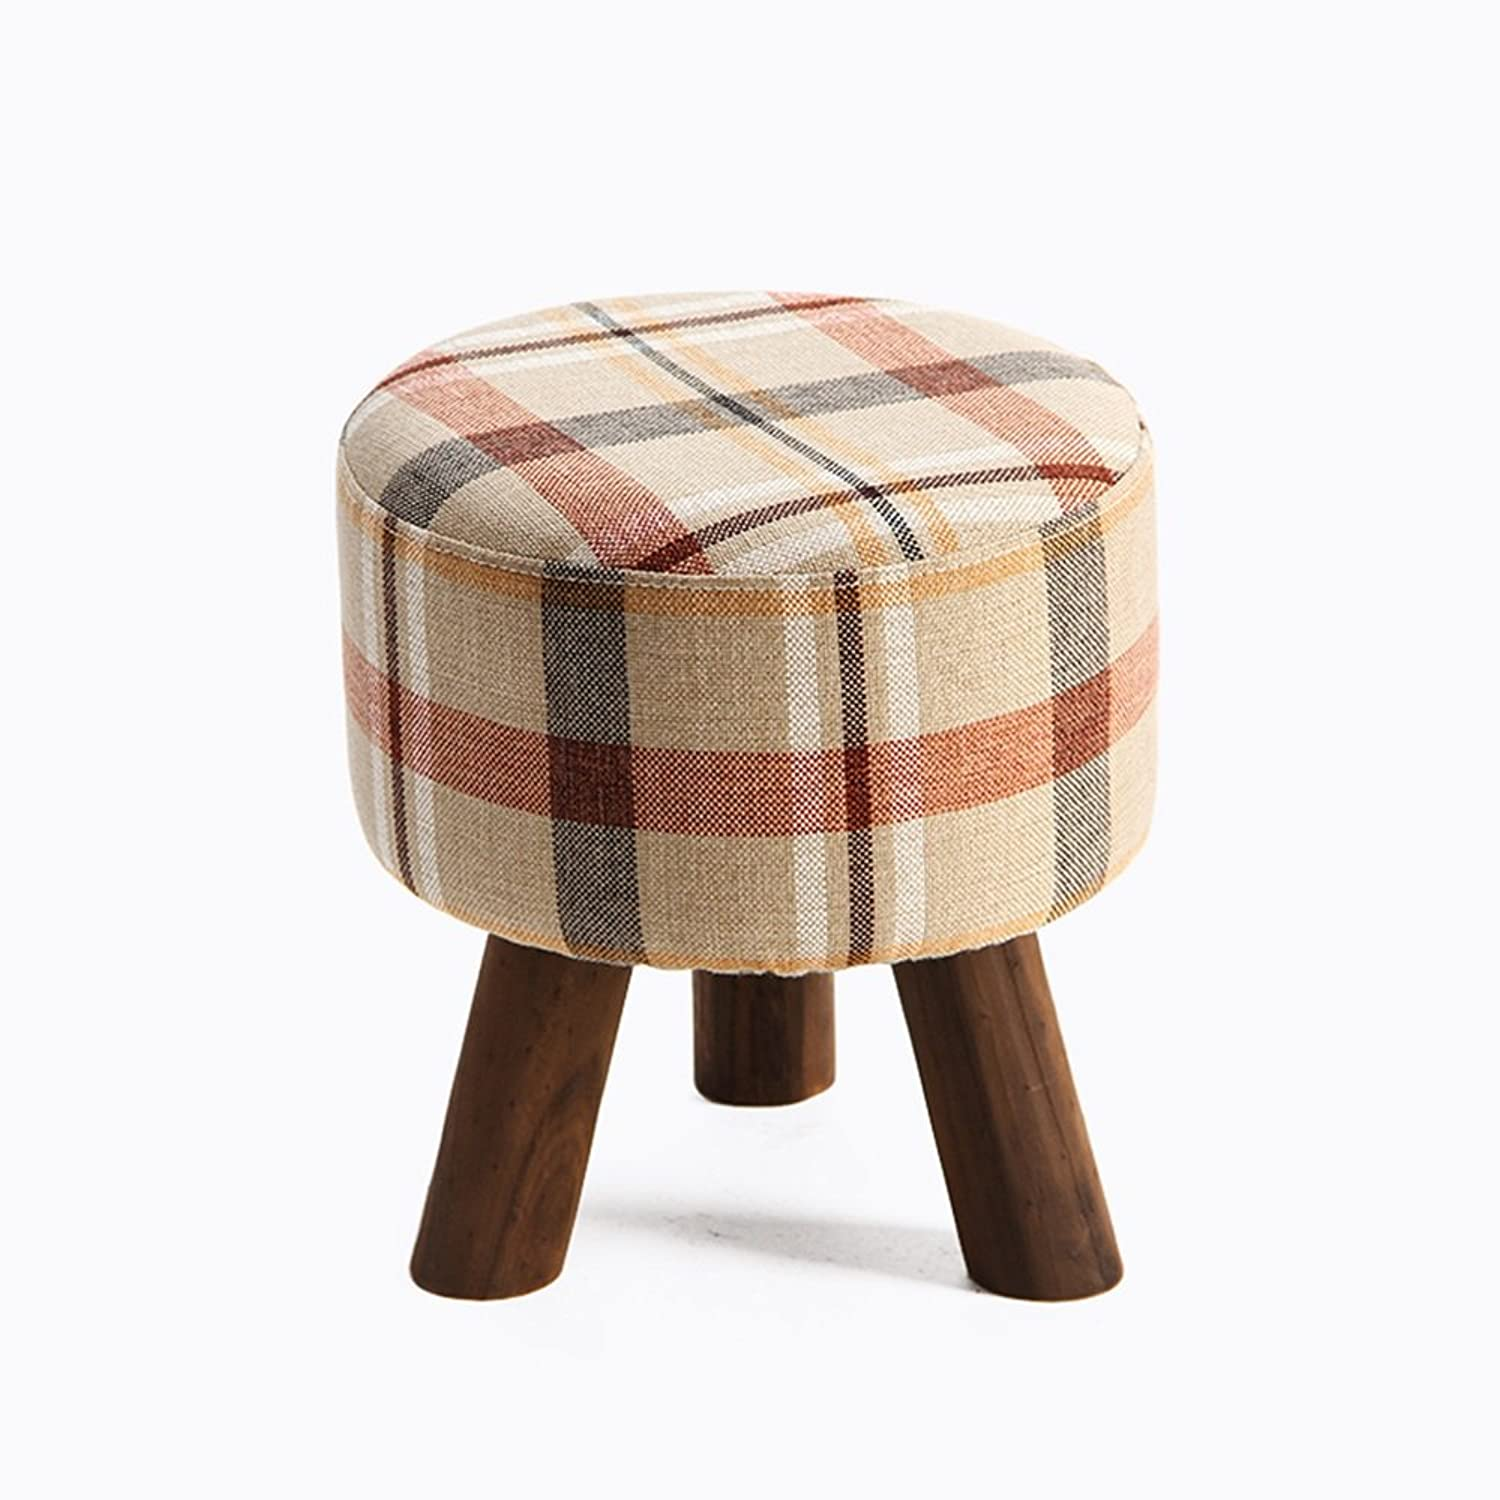 Simple Modern shoes stool, Sofa stool, Solid Wood for shoes stool, Cloth pier, Living Room Footstool, Small stool, Wearing a shoes stool